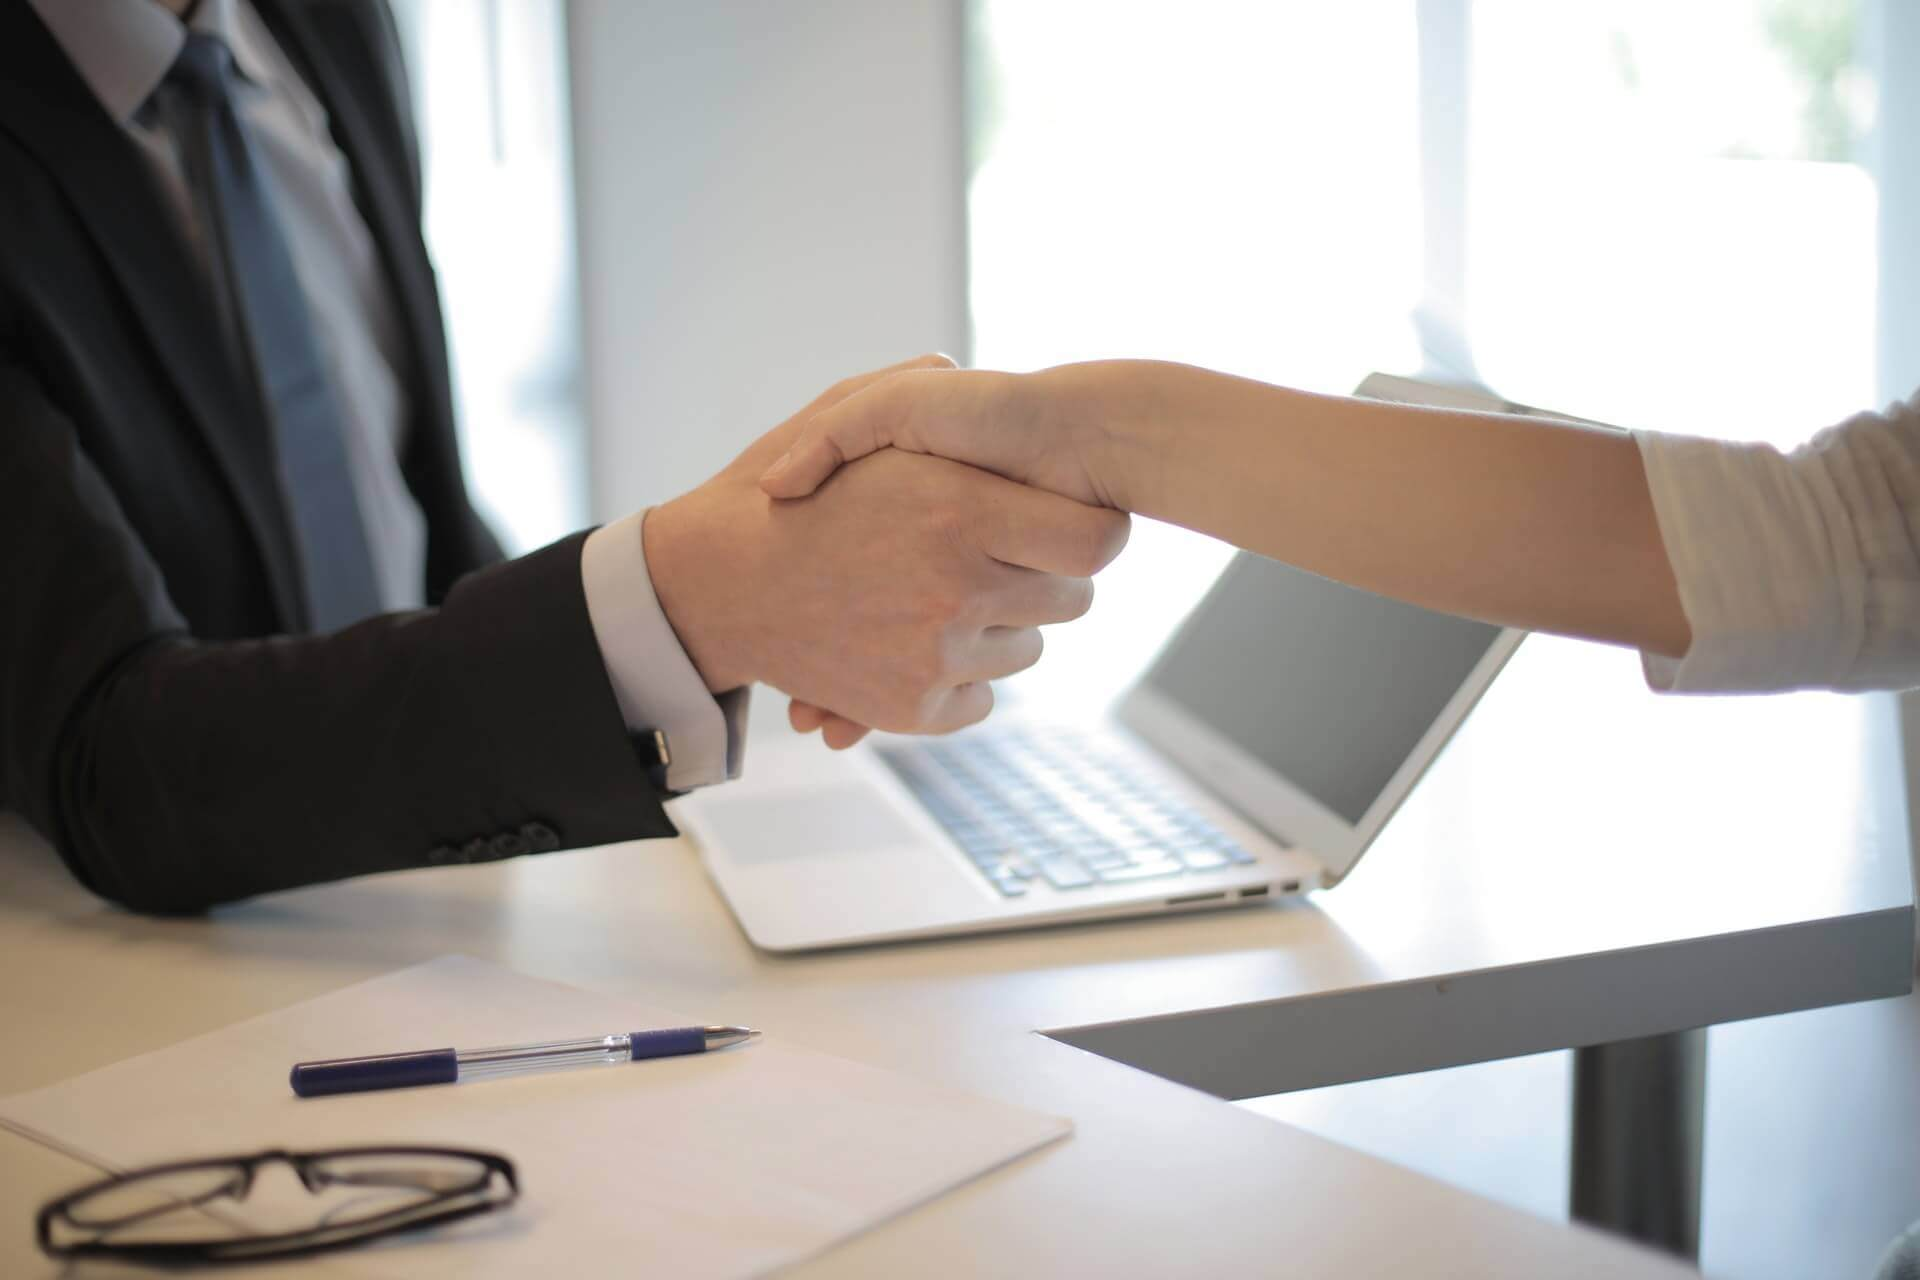 A person in a black suit shaking hands with a lady in white with an office background, referring to staying employed during the current crisis of the corona pandemic.